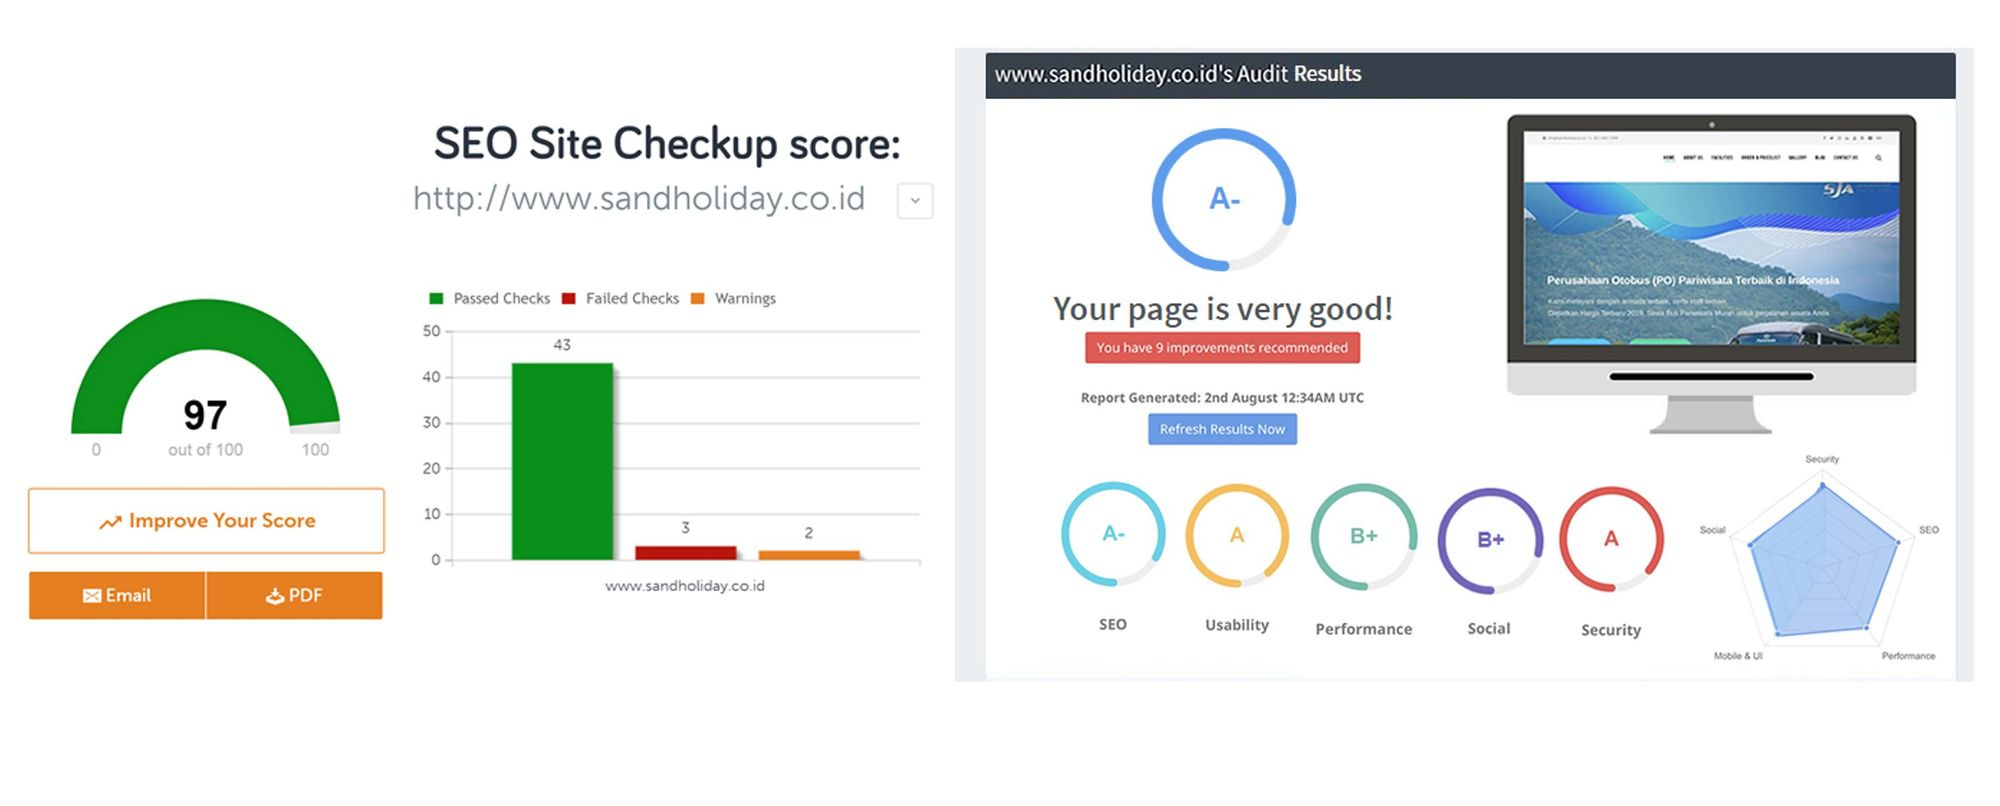 SEO Site Checkup Score - On-page SEO Audit - Jasa SEO Indonesia - Arfadia